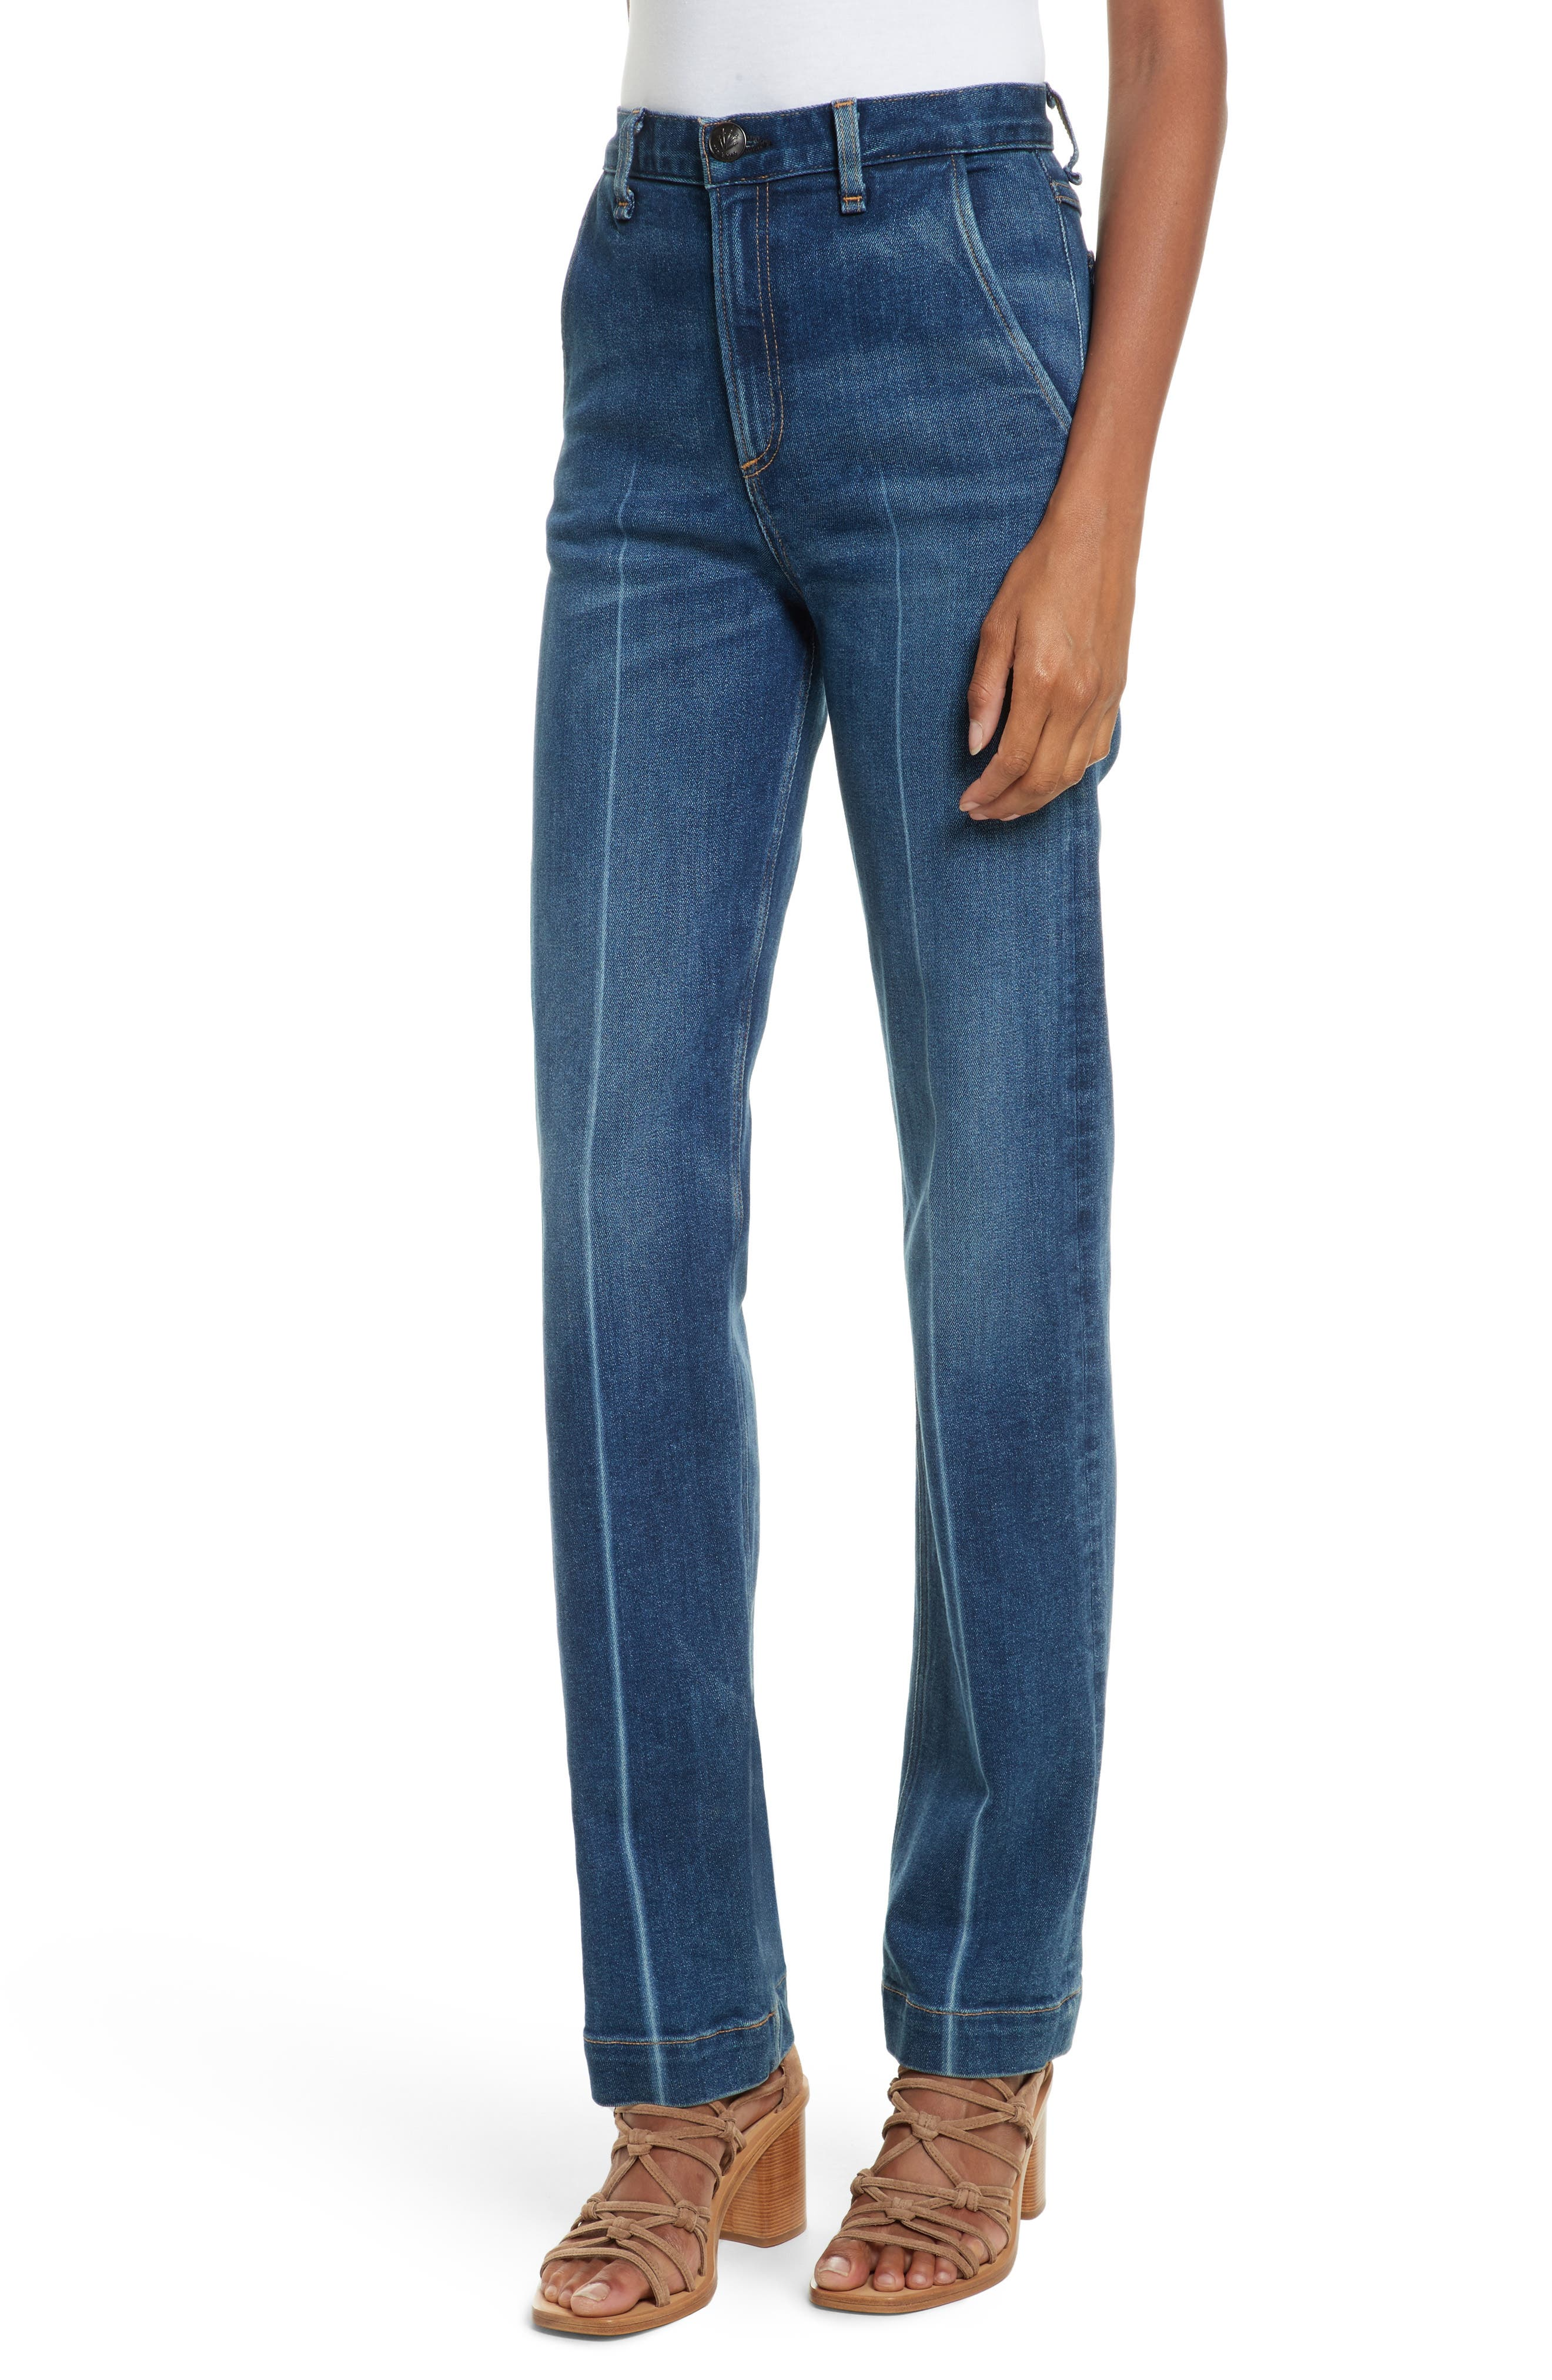 Justine High Waist Trouser Jeans,                         Main,                         color, Highwater